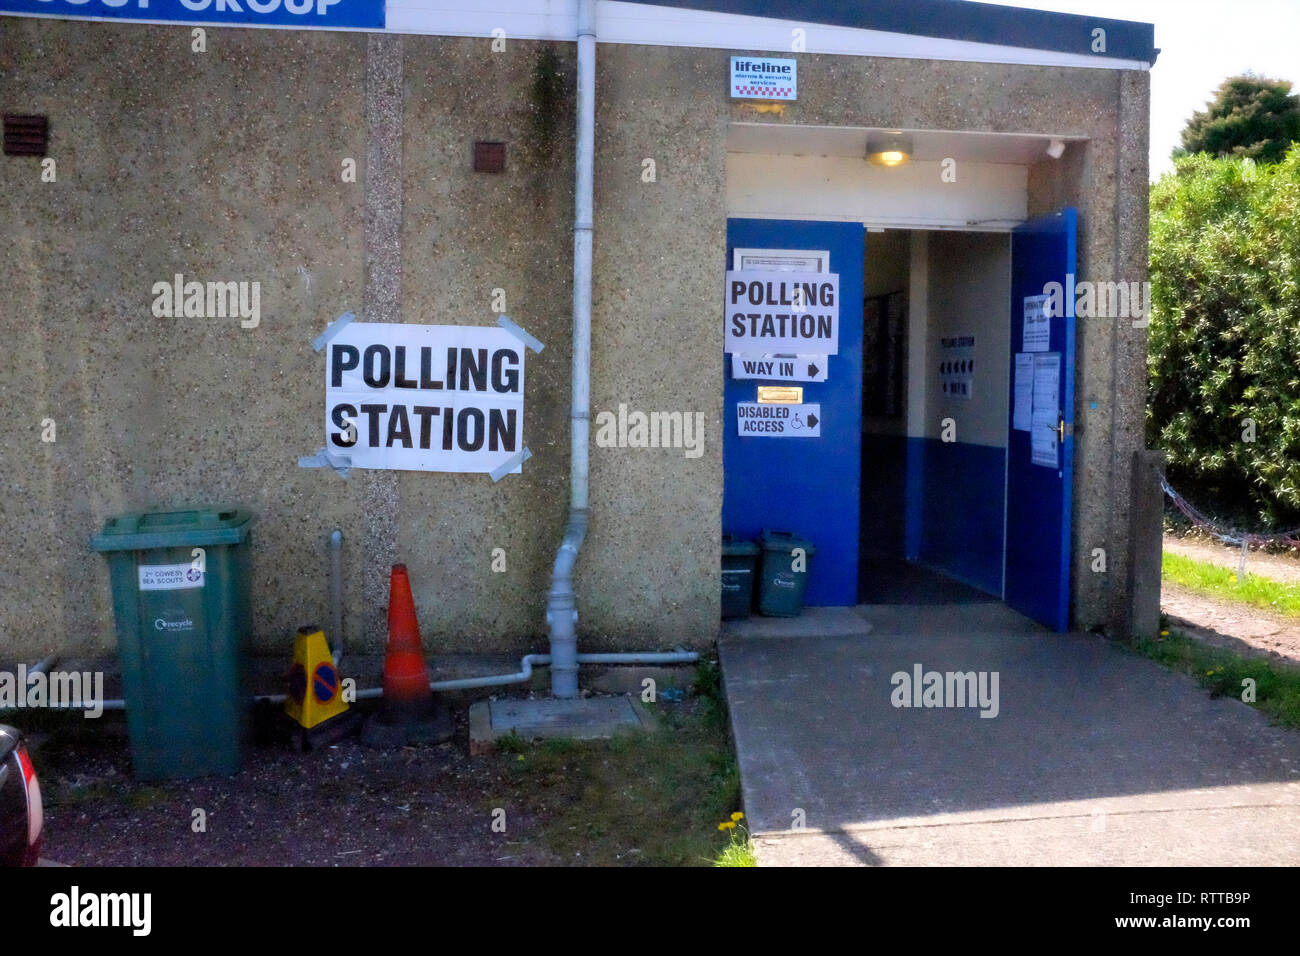 Scout Hut, Polling Station, deprived, area, poverty, poor, constituency, vote, party, politics, booth, paper, - Stock Image